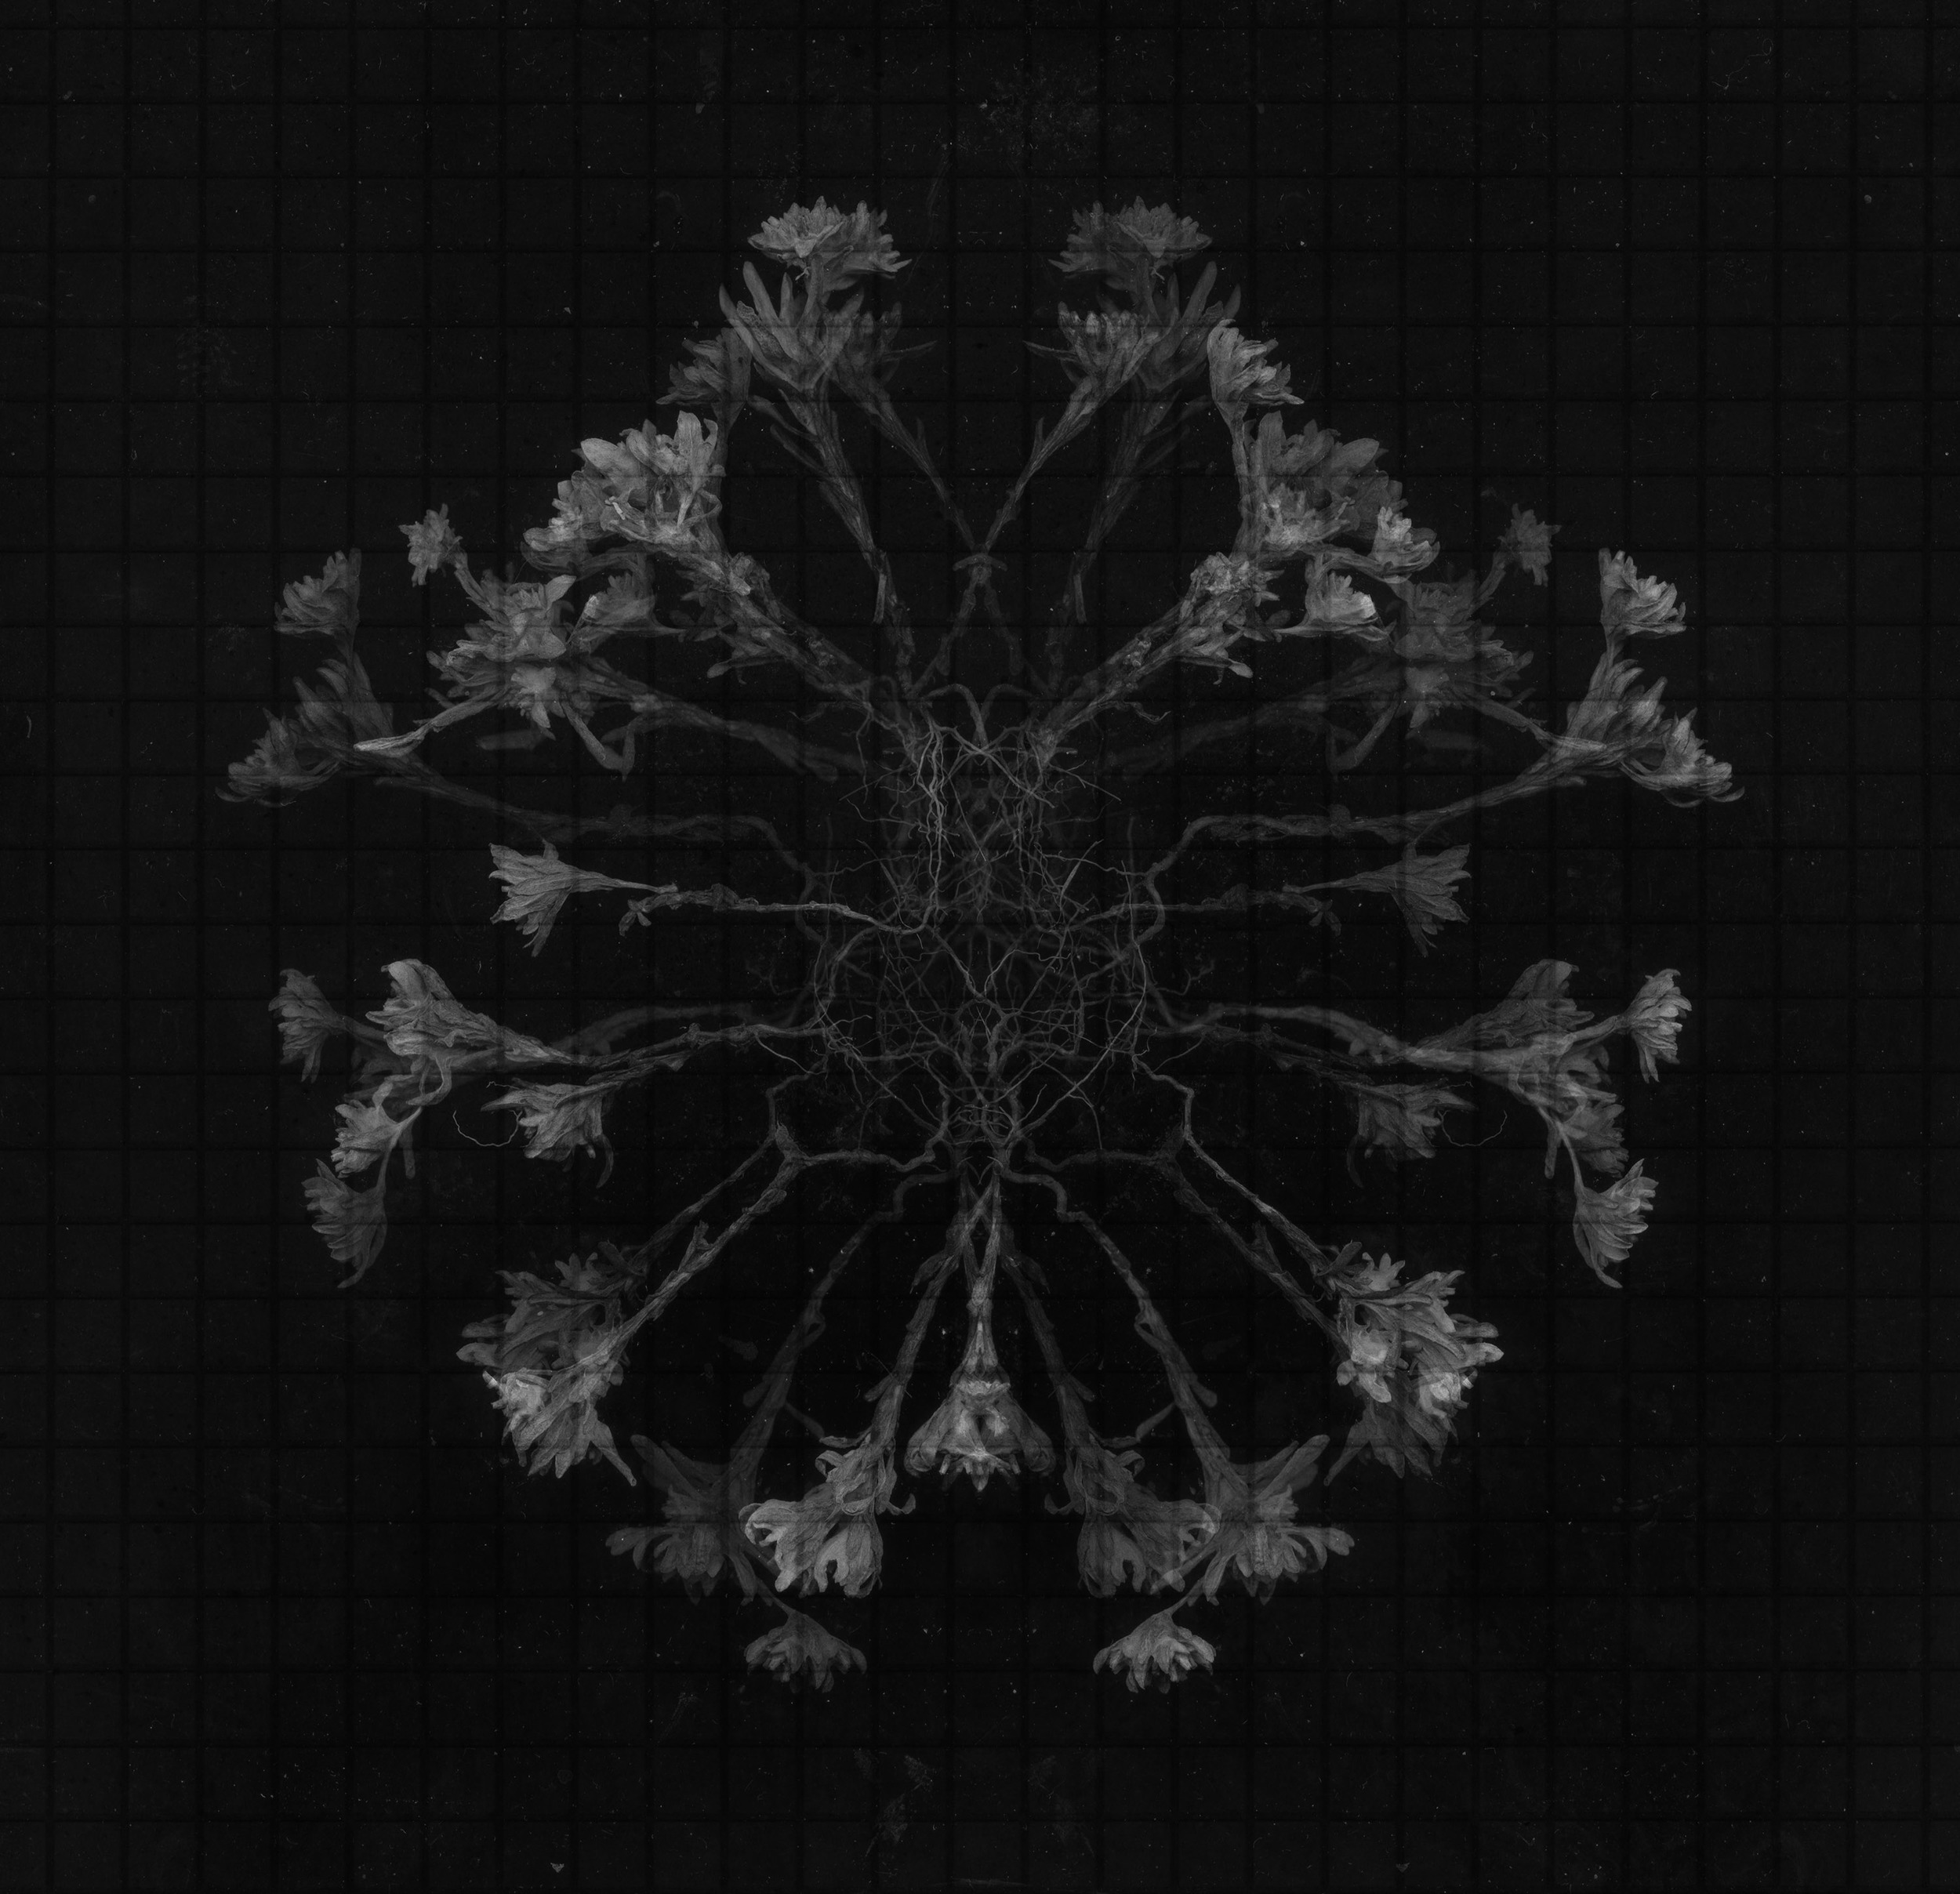 An Ordered Chaos #30 (Neurons), Archival Inkjet Print, 20 by 20 inches, , 2016